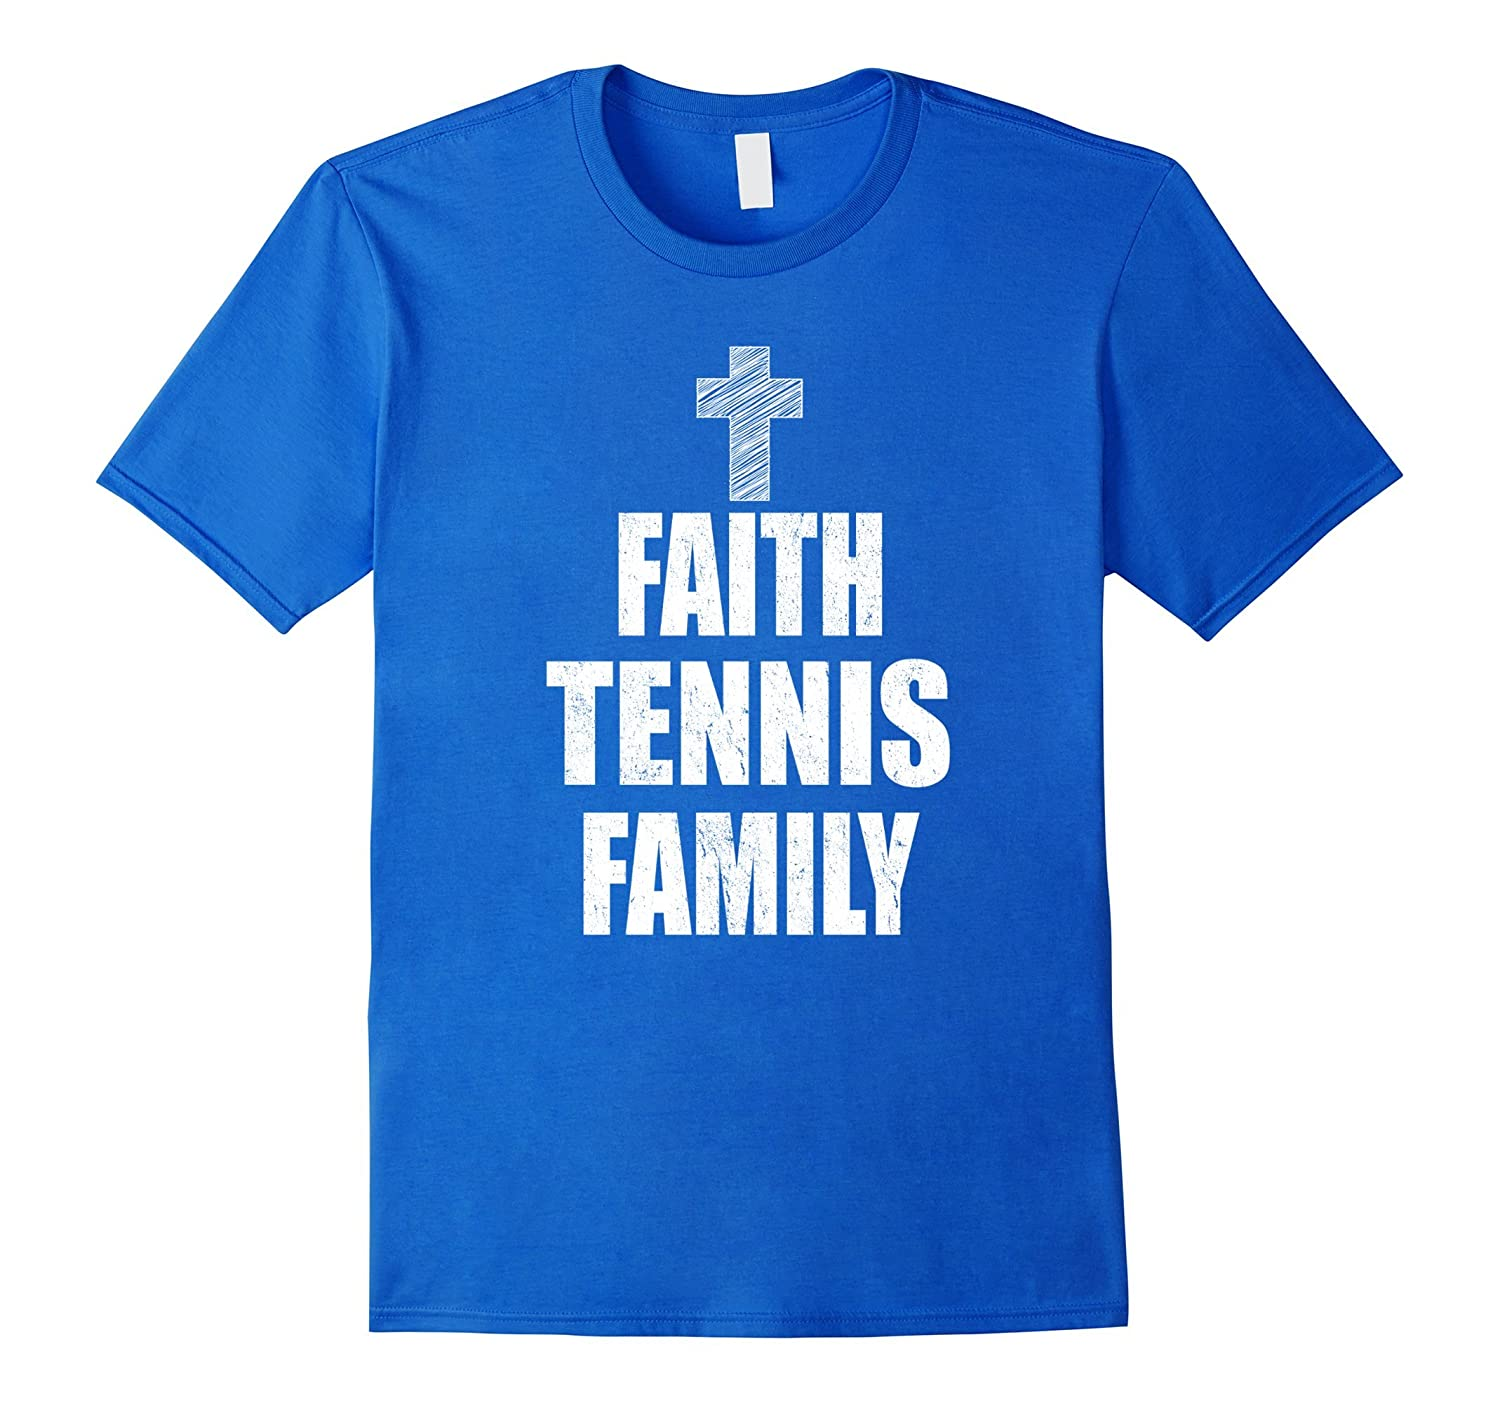 faith tennis family t shirt goatstee. Black Bedroom Furniture Sets. Home Design Ideas